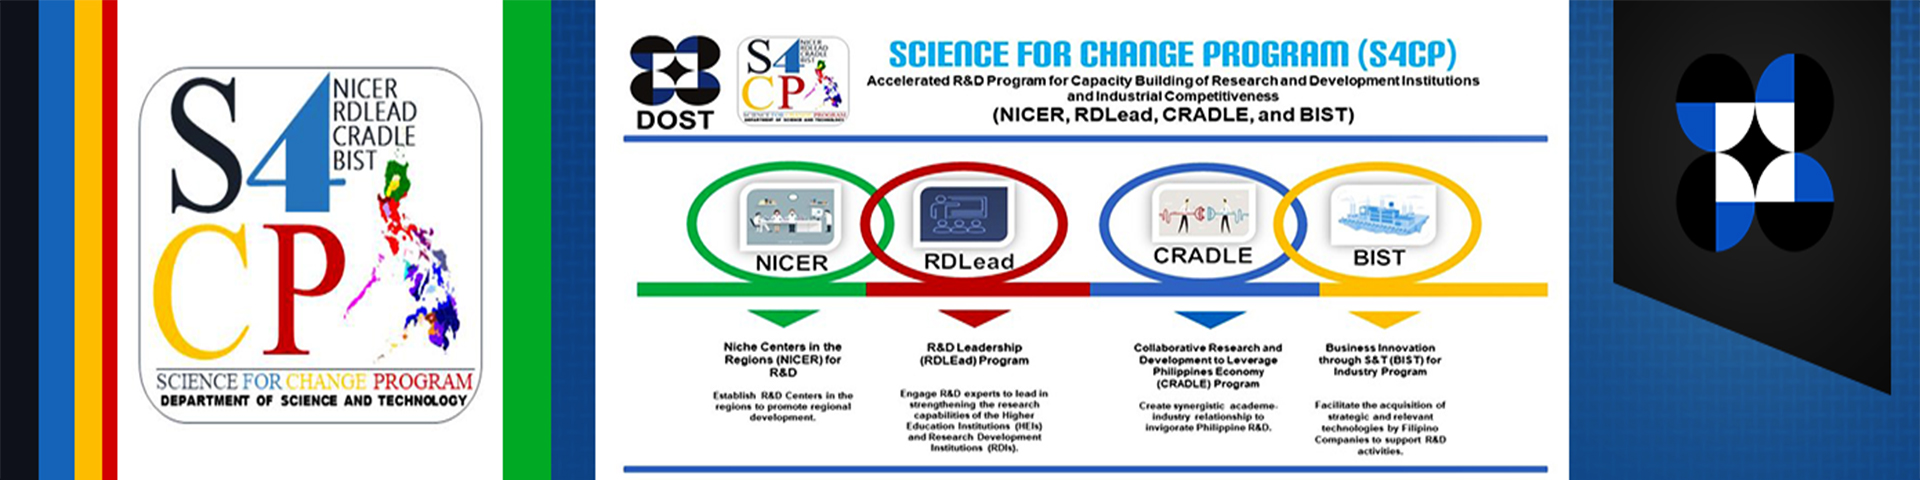 science for change program